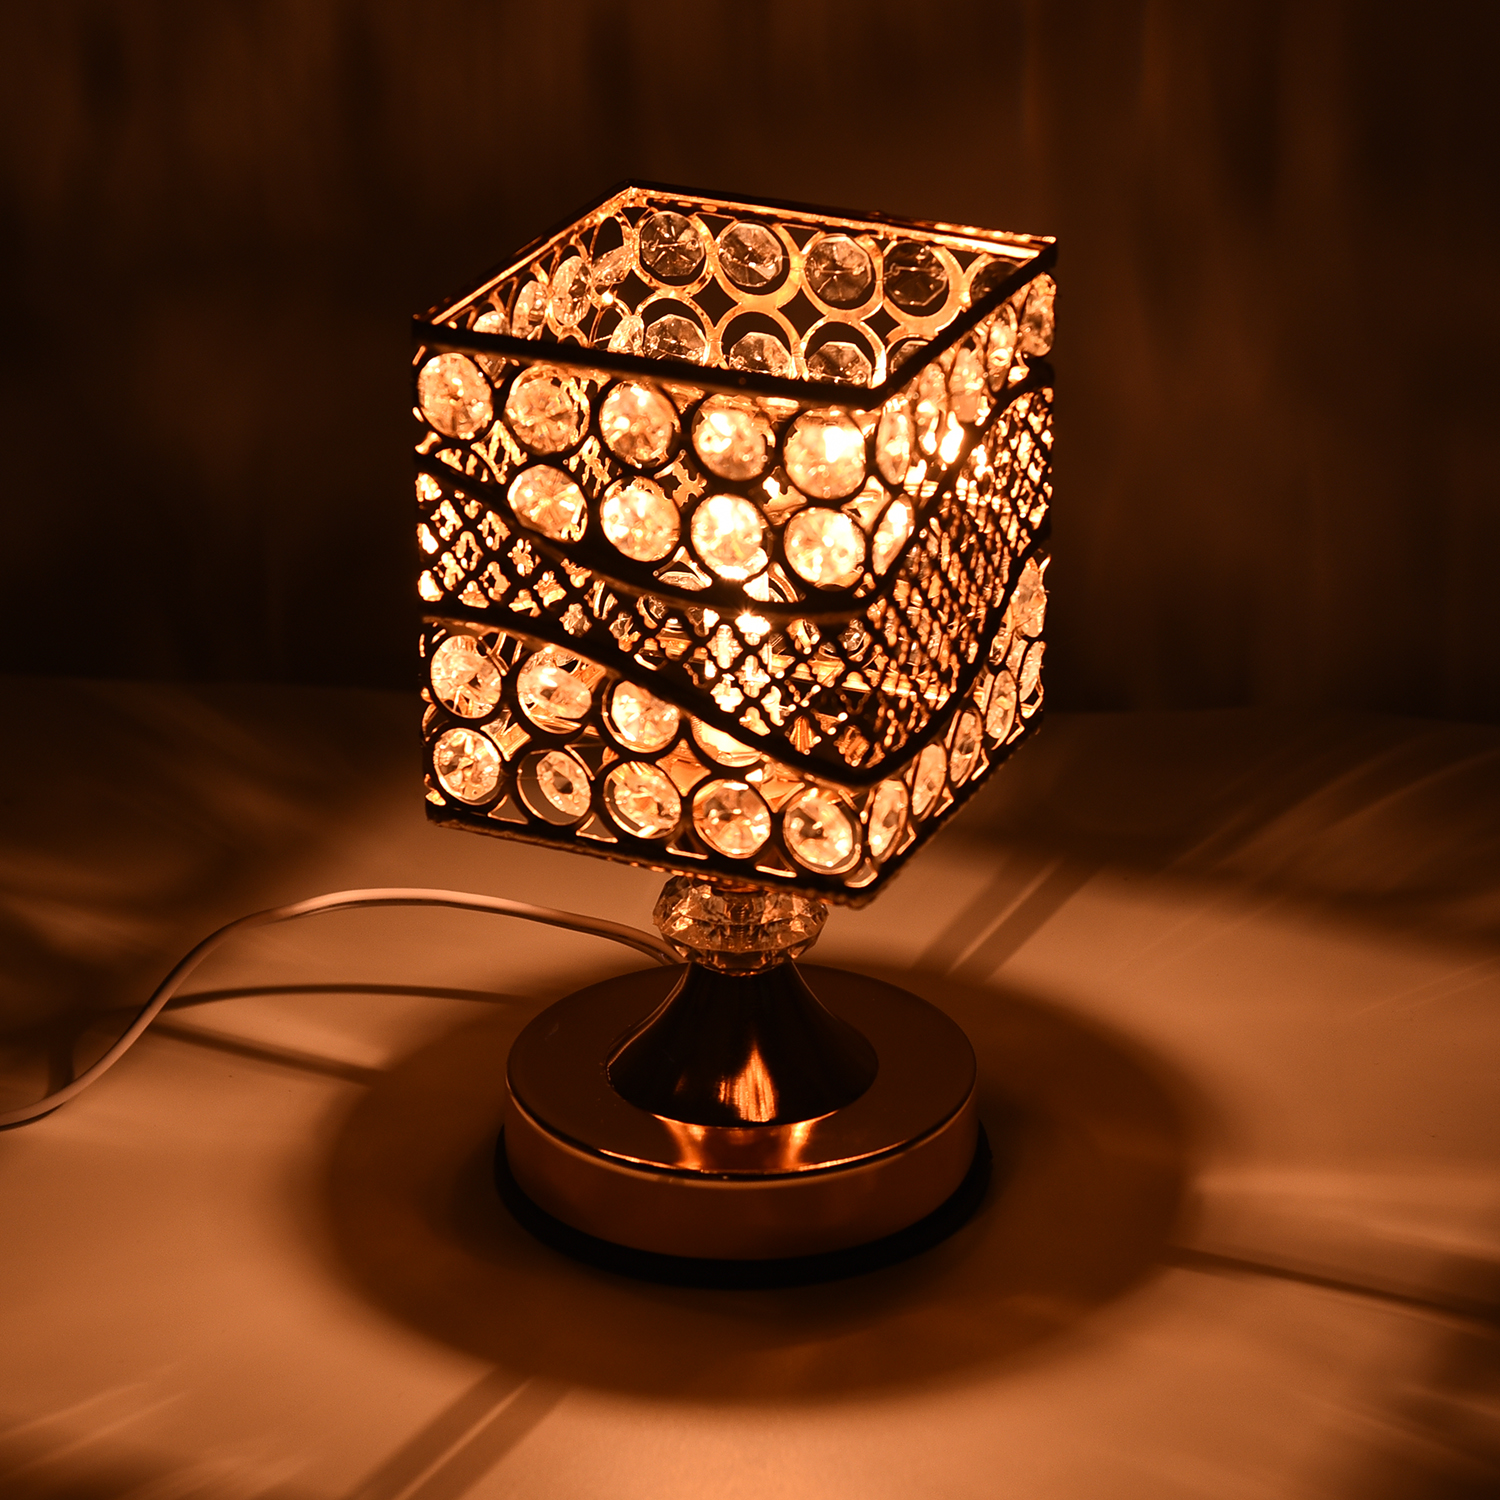 thumbnail 2 - Home Decor Gold Color Iron Design G Table Lamp with UL Plug Bulb G5 Included